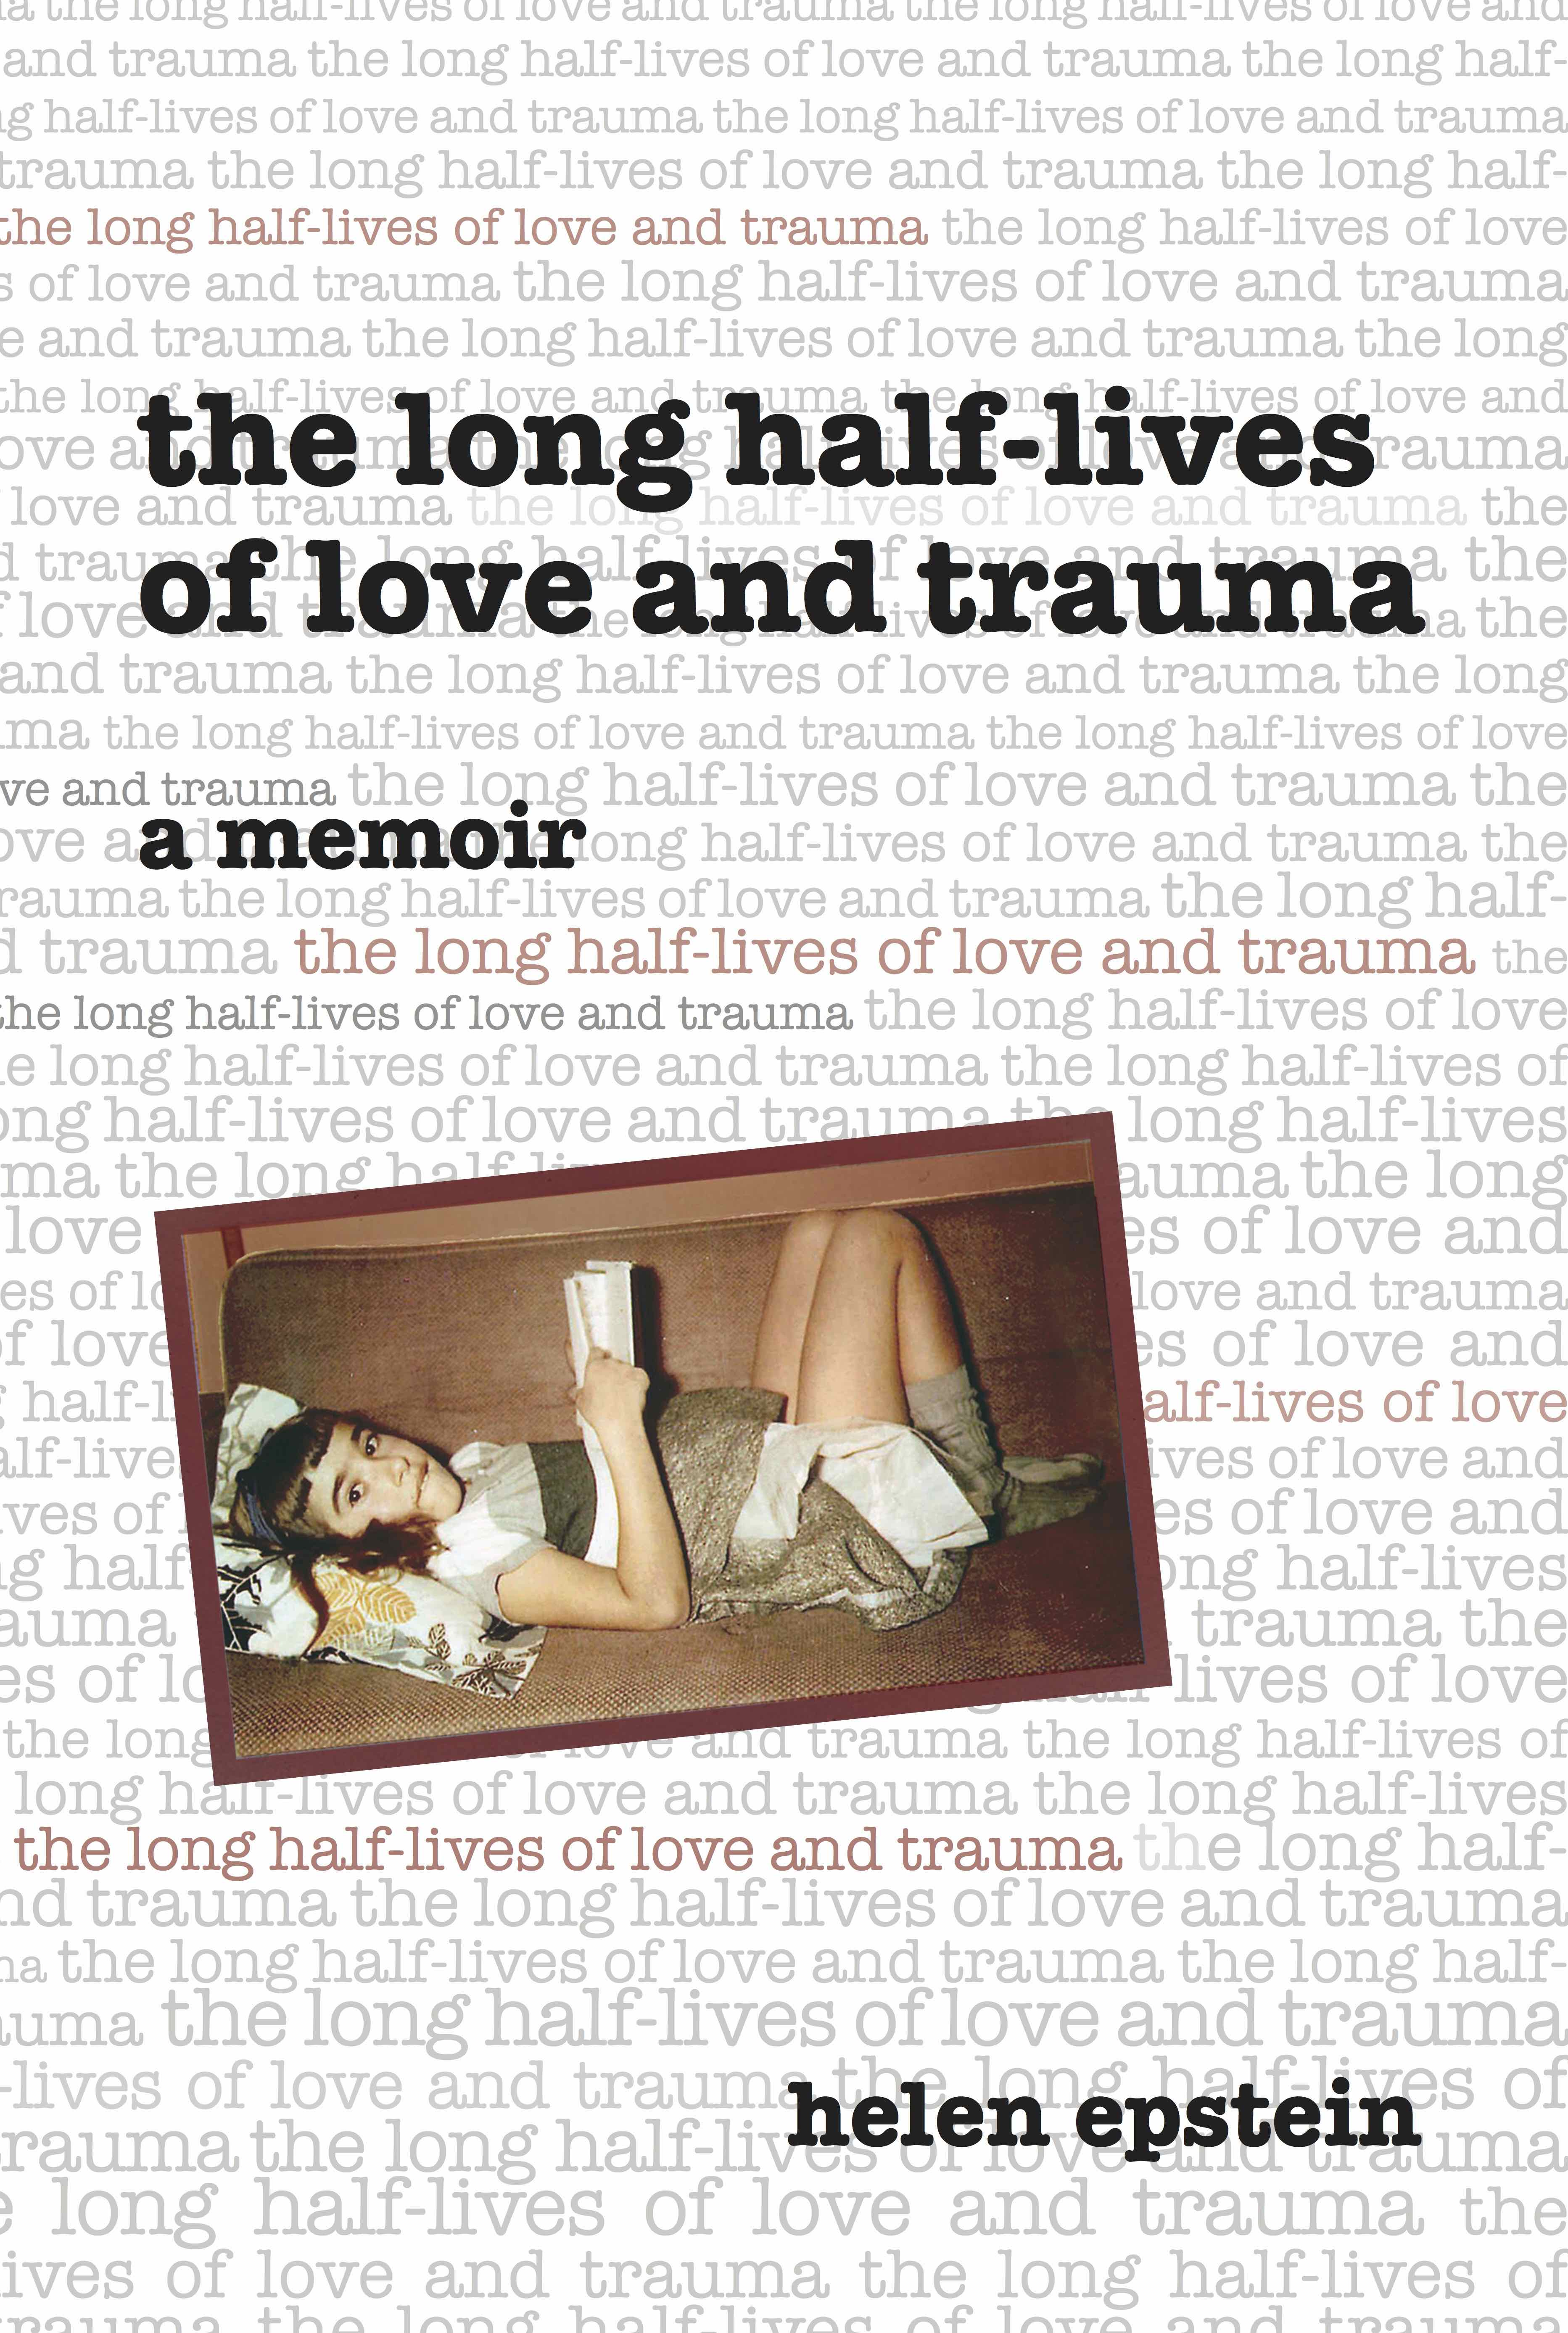 the long half-lives of love and trauma by helen epstein front cover